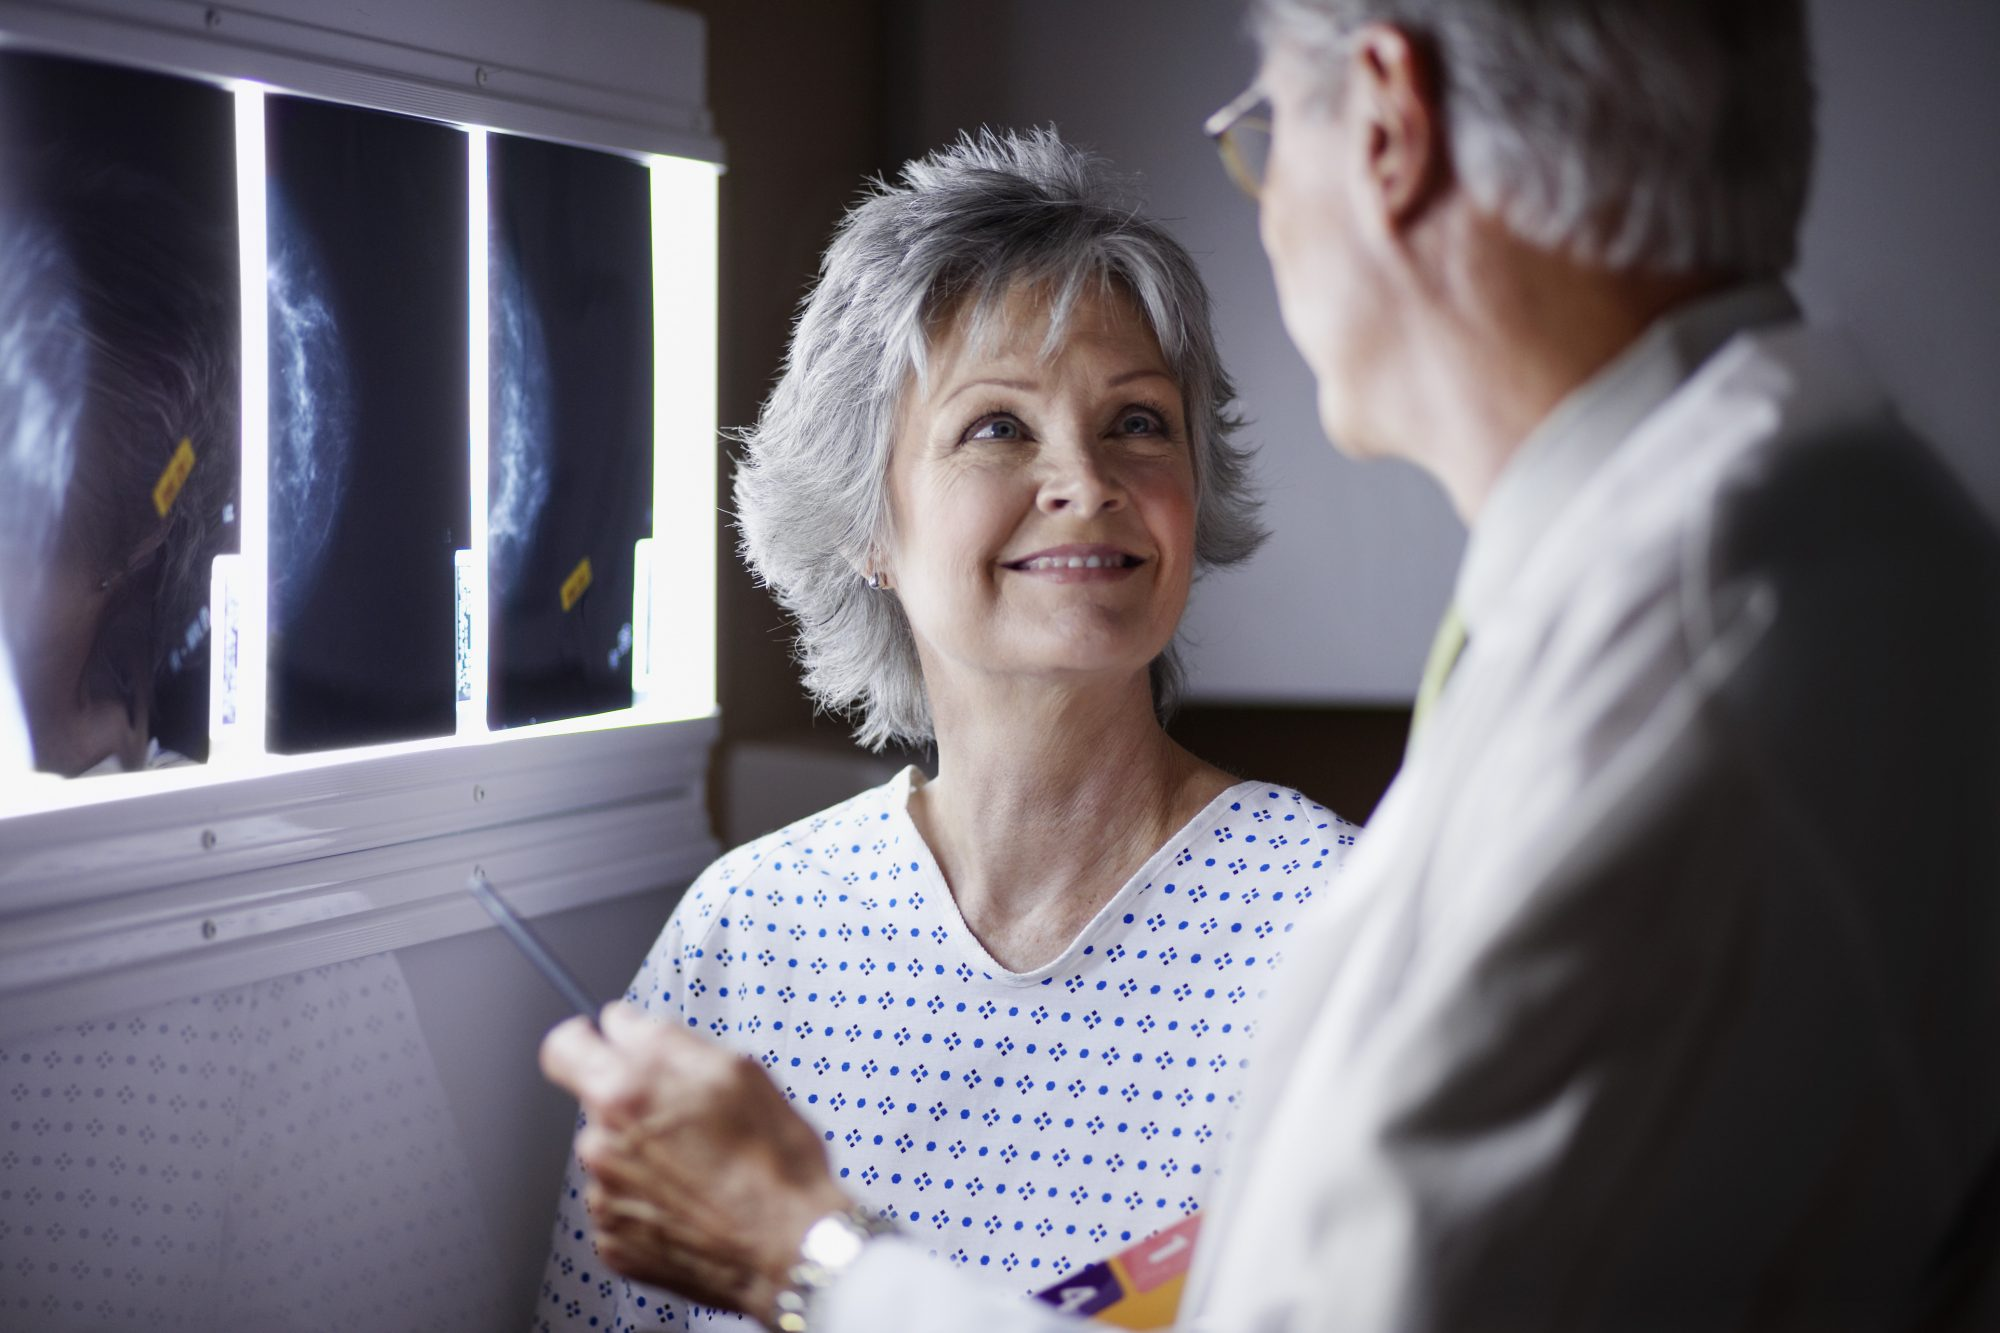 Myth: If your mammography report is negative, there is nothing else to worry about.